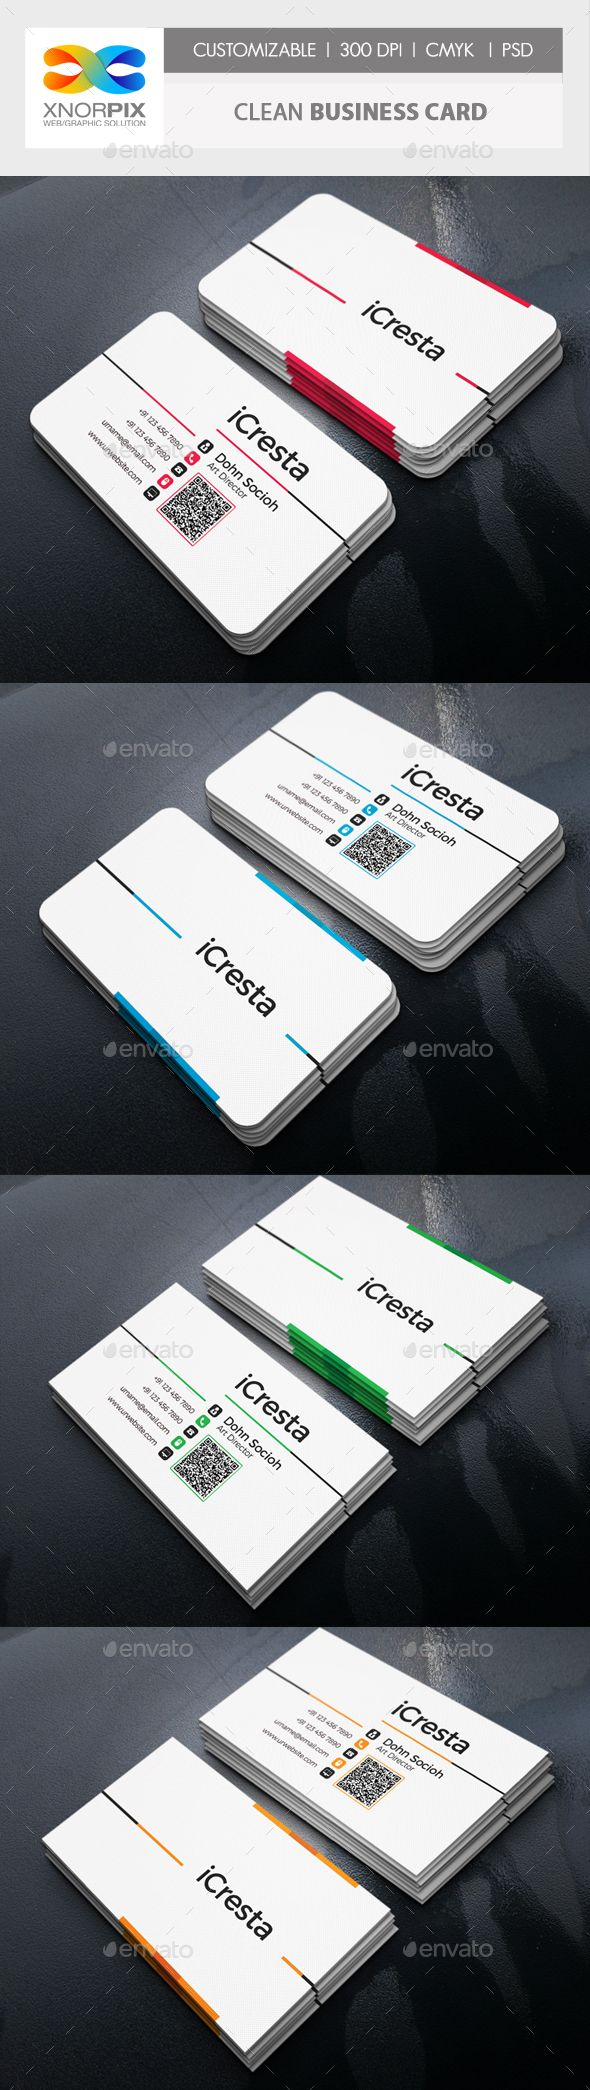 The 25 best cleaning business cards ideas on pinterest elegant clean business card magicingreecefo Choice Image